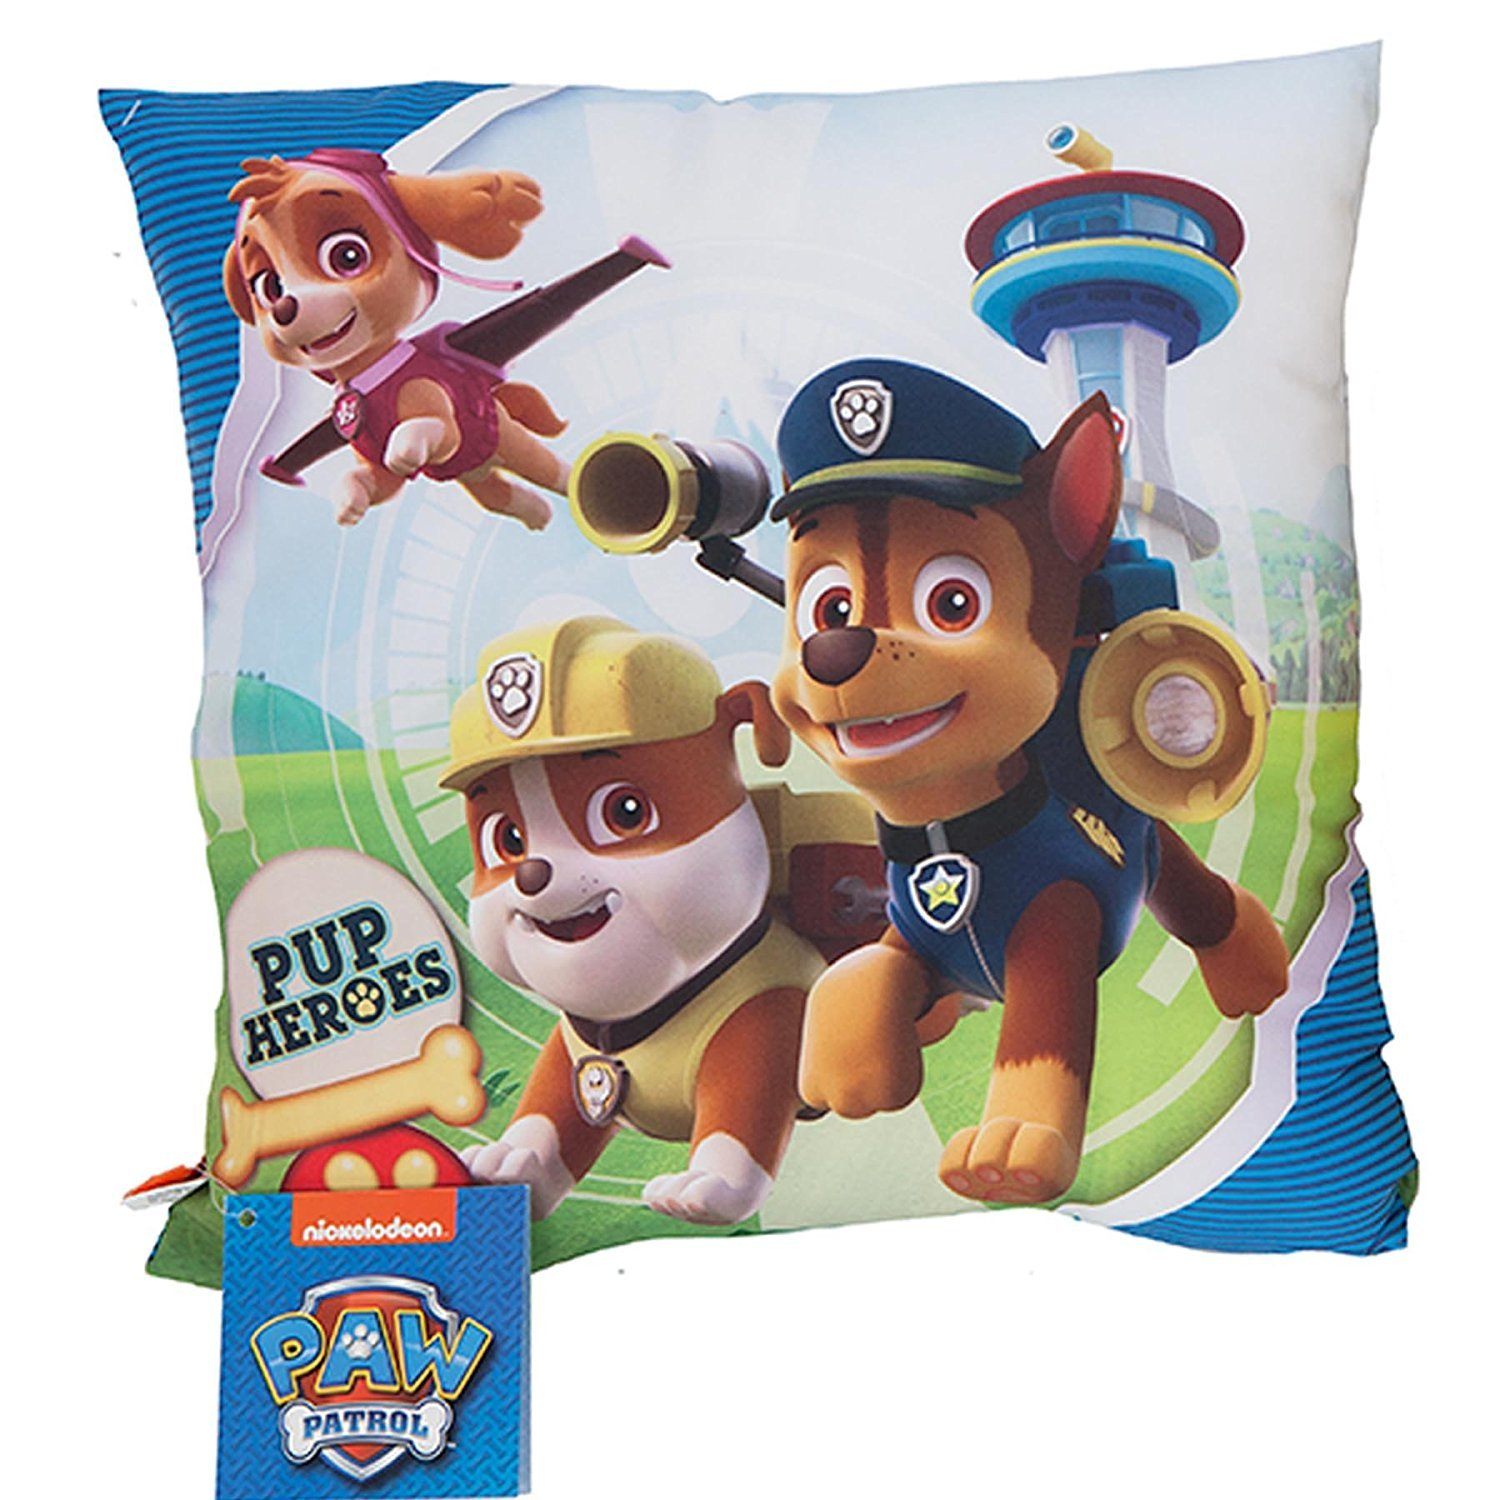 Paw Patrol Official Licensed Cushion Pillow - Blue Gosh